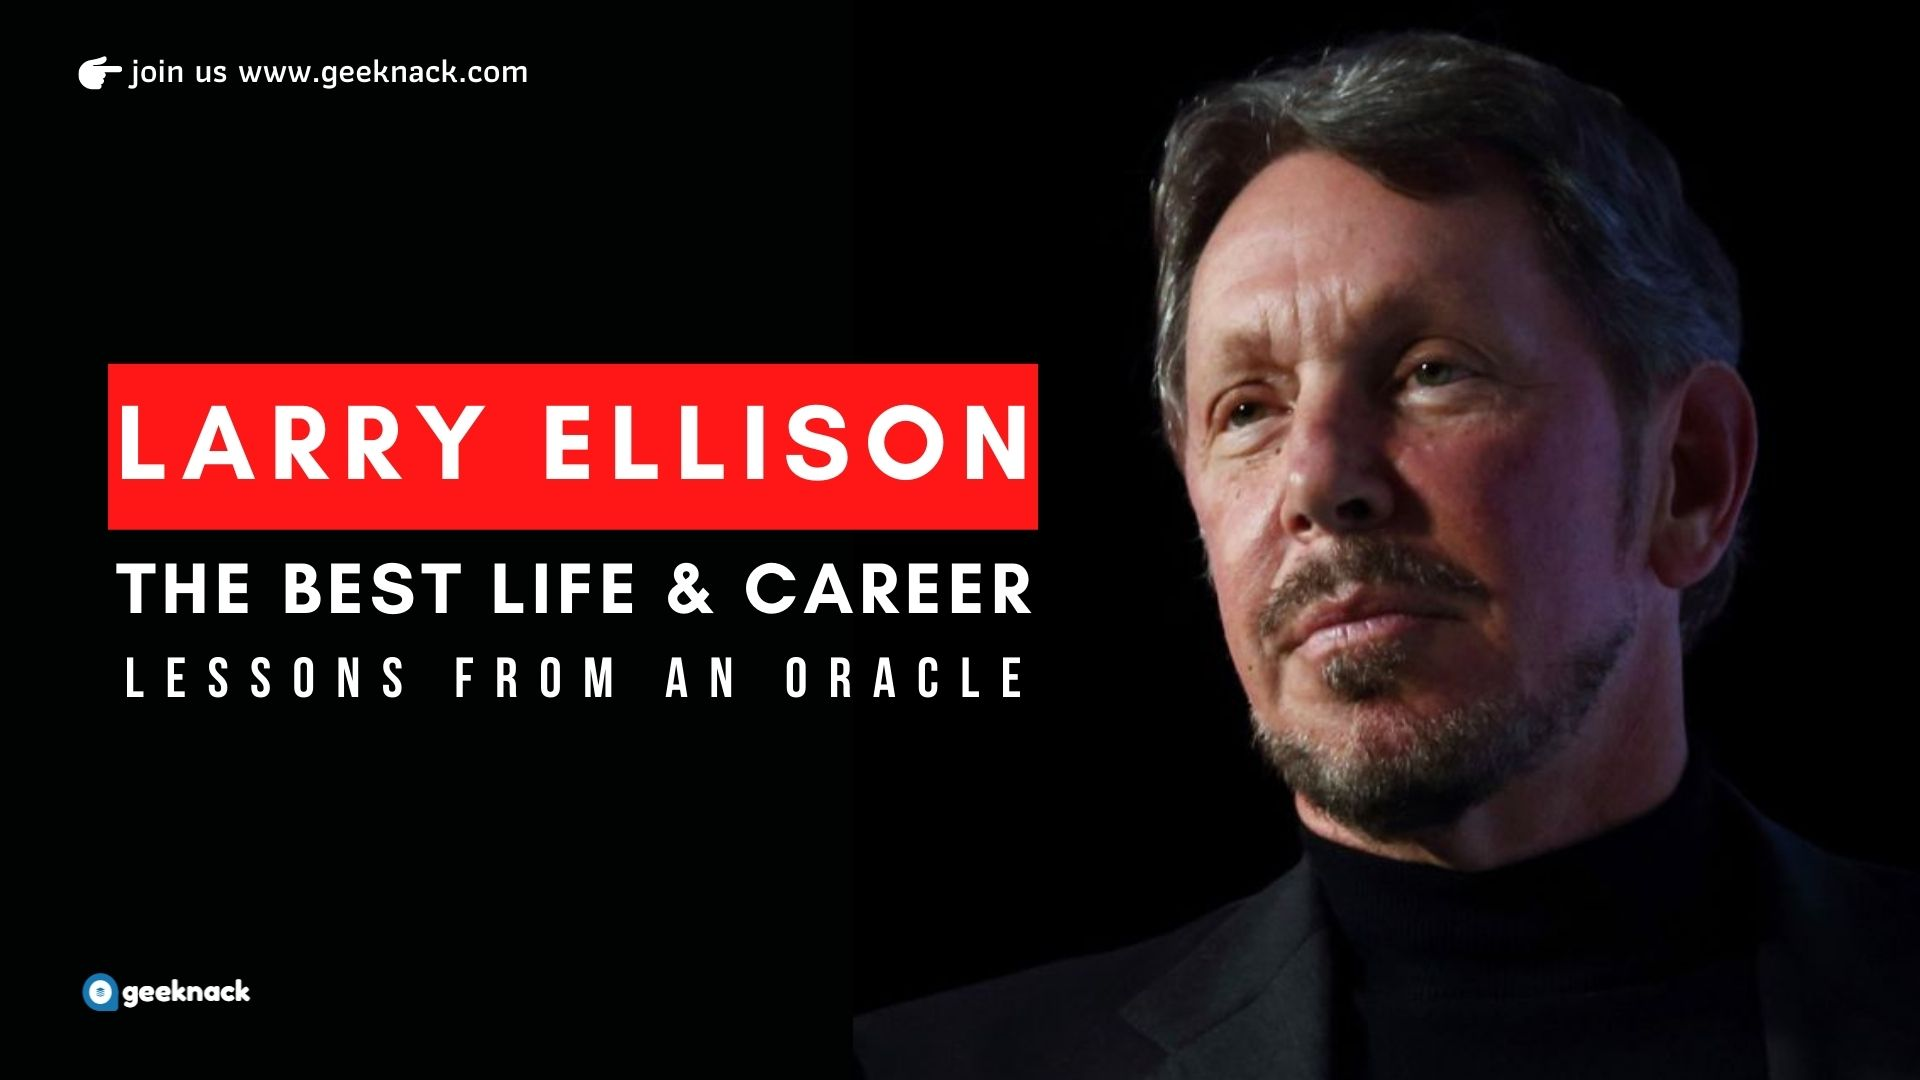 Larry Ellison - The Best Life & Career Lessons From an Oracle